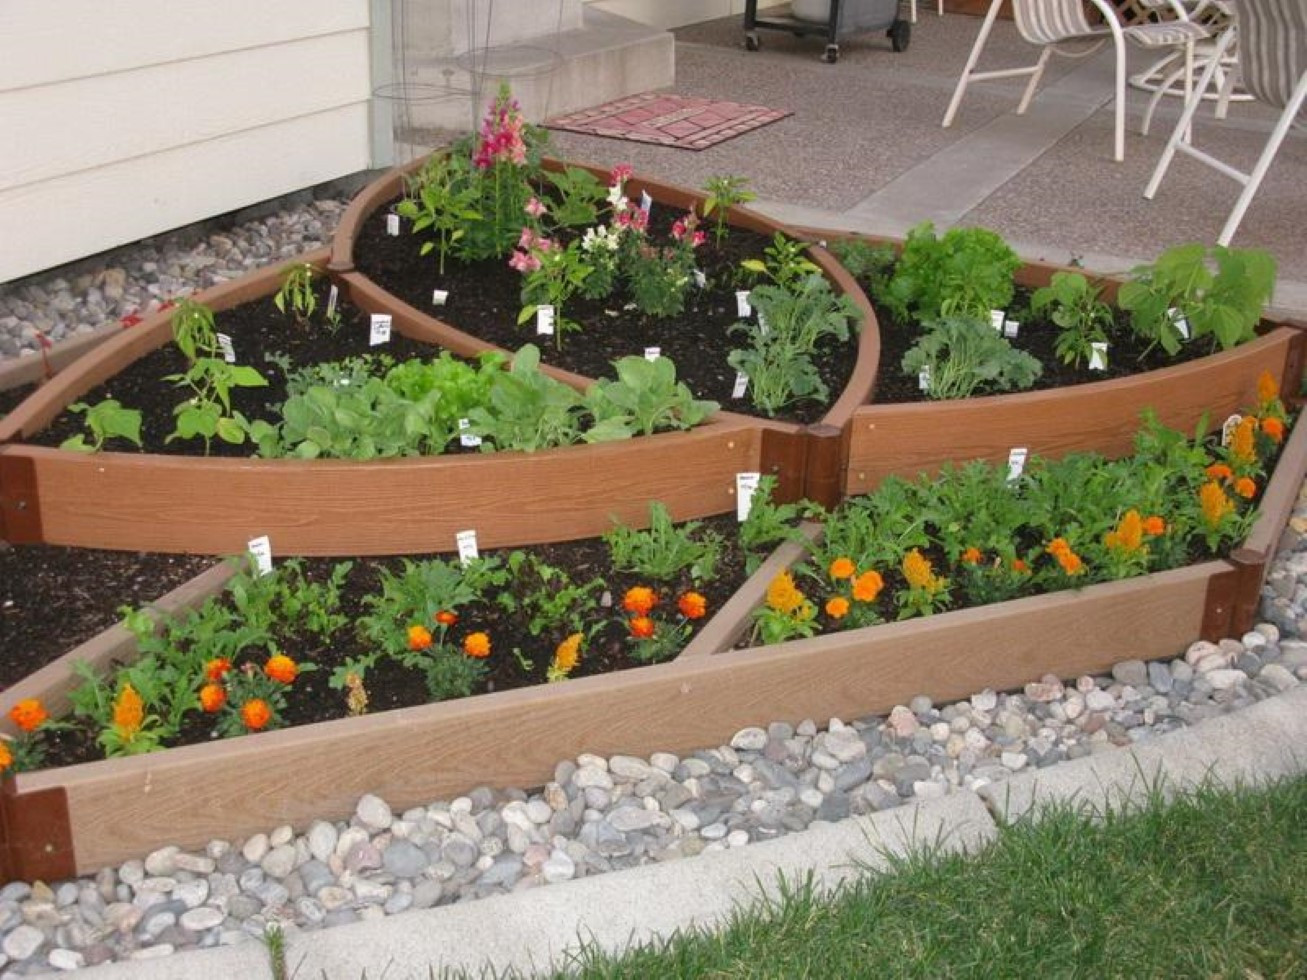 Best ideas about Home Vegetable Garden Ideas . Save or Pin Simple Ve able Garden Ideas for Your Living Amaza Design Now.